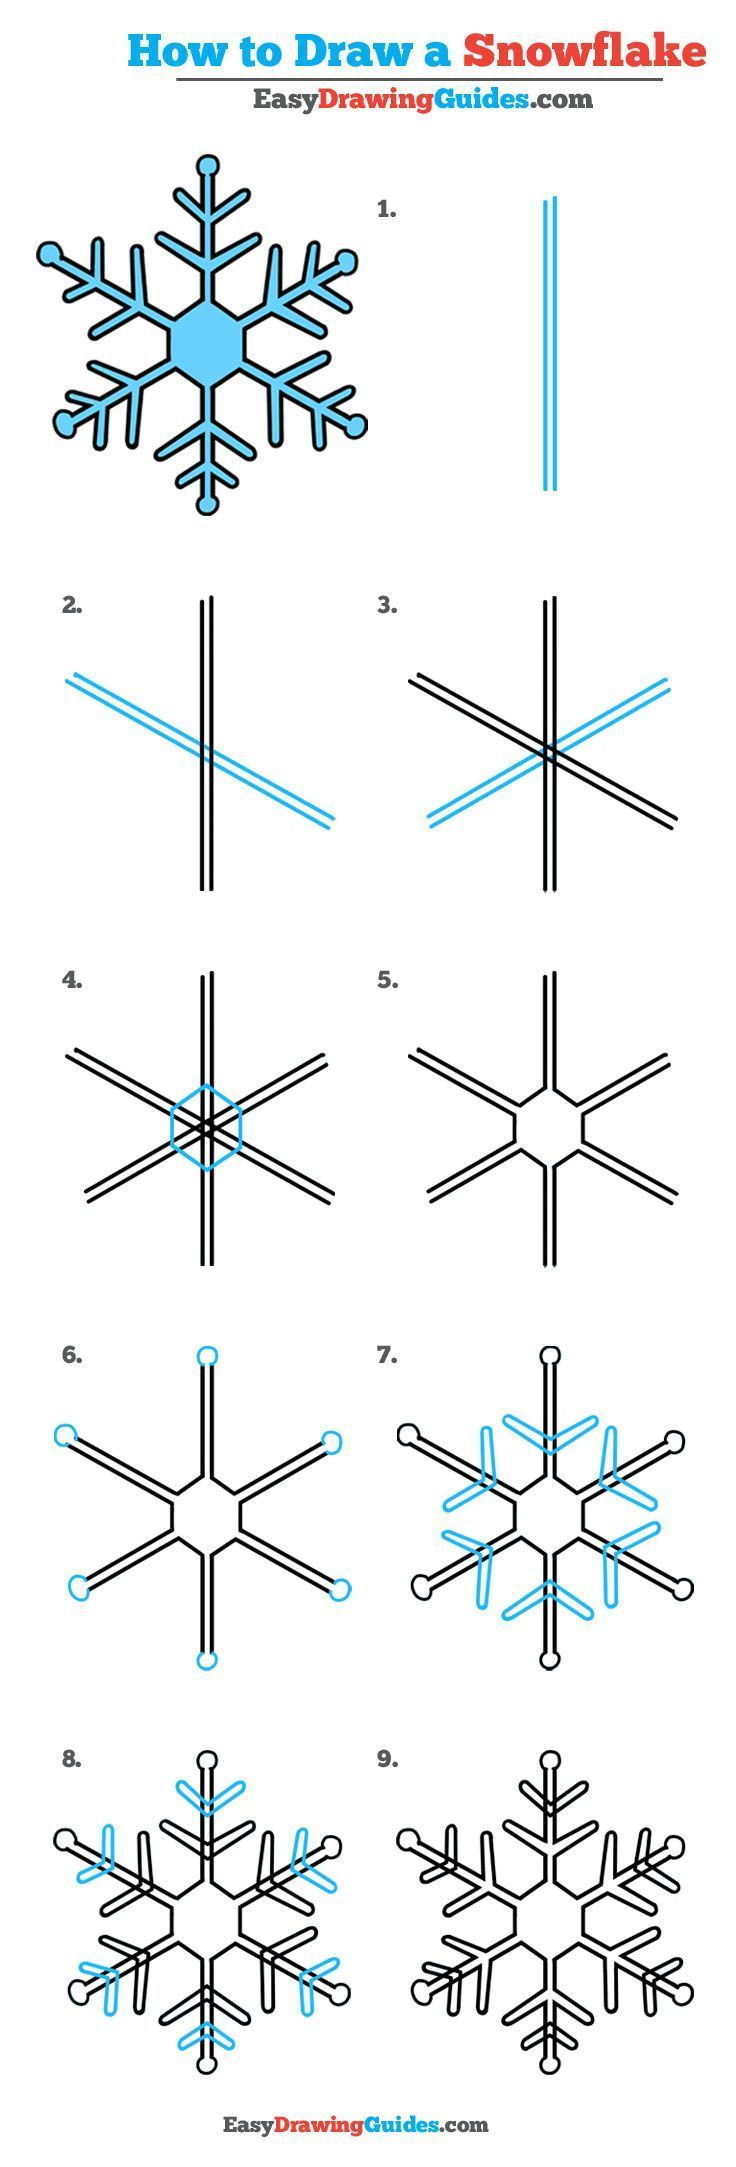 Learn How to Draw a Snowflake: Easy Step-by-Step Drawing Tutorial for Kids and Beginners. #snowflake #drawing #tutorial. See the full tutorial at https://easydrawingguides.com/how-to-draw-a-snowflake-really-easy-drawing-tutorial/